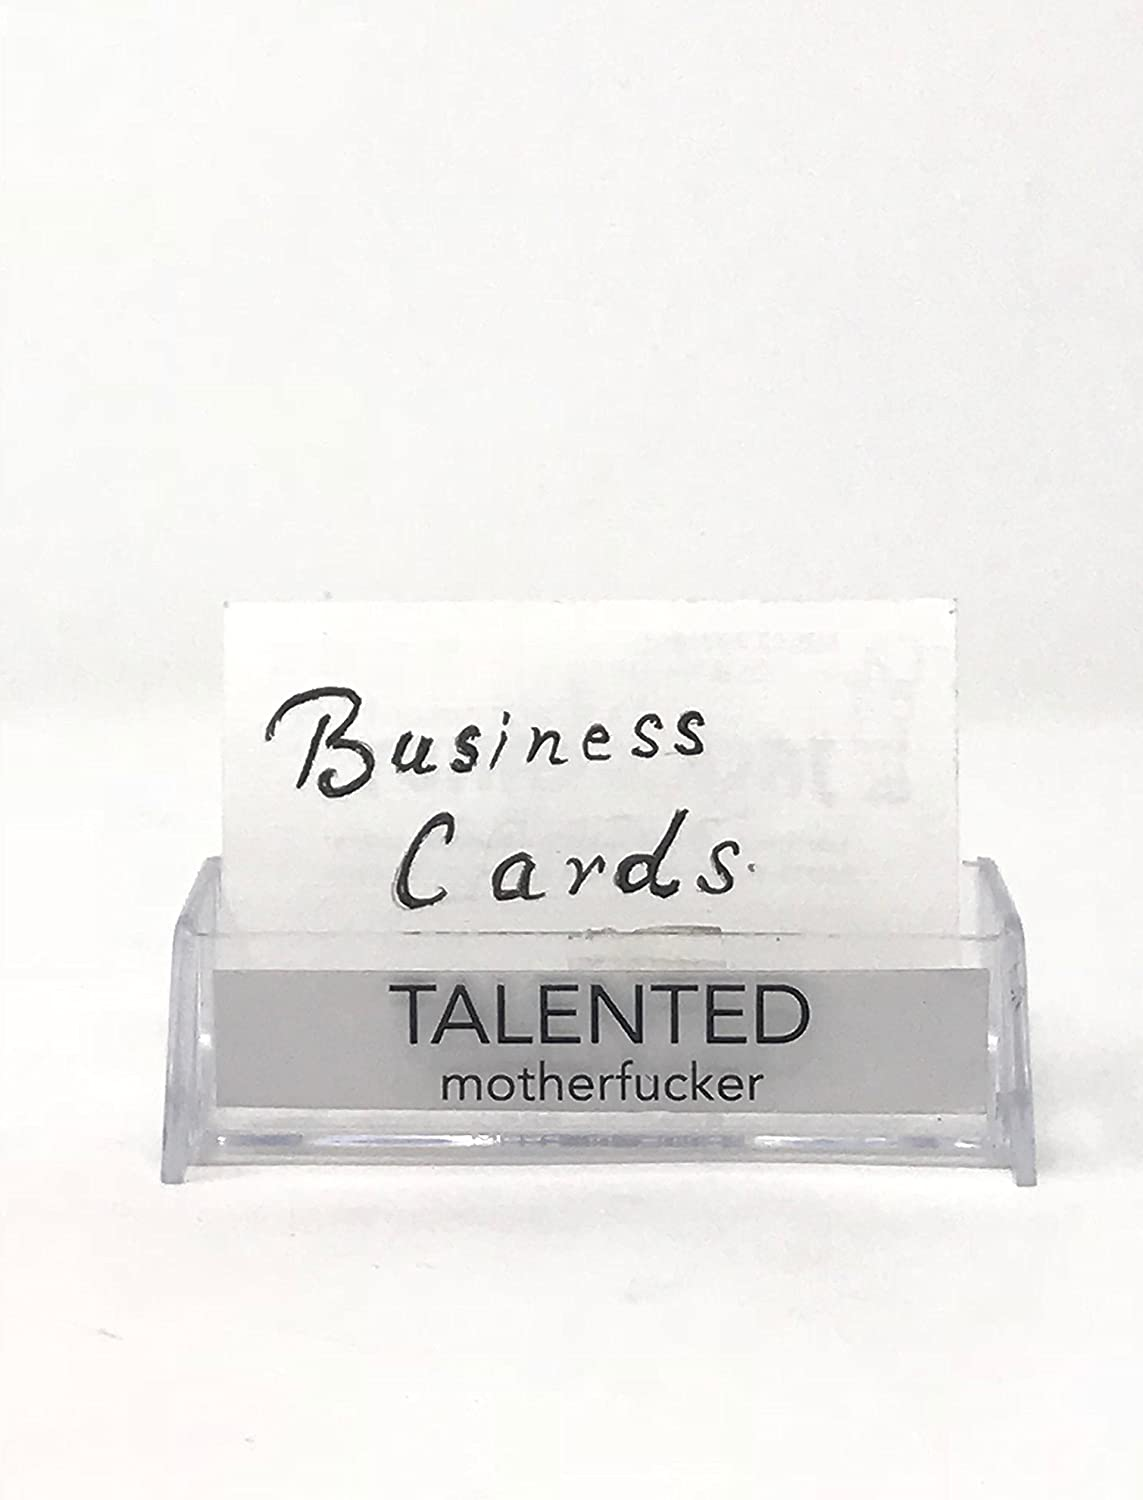 aahs Engraving Business cards YOU MIGHT WANT TO CONSIDER